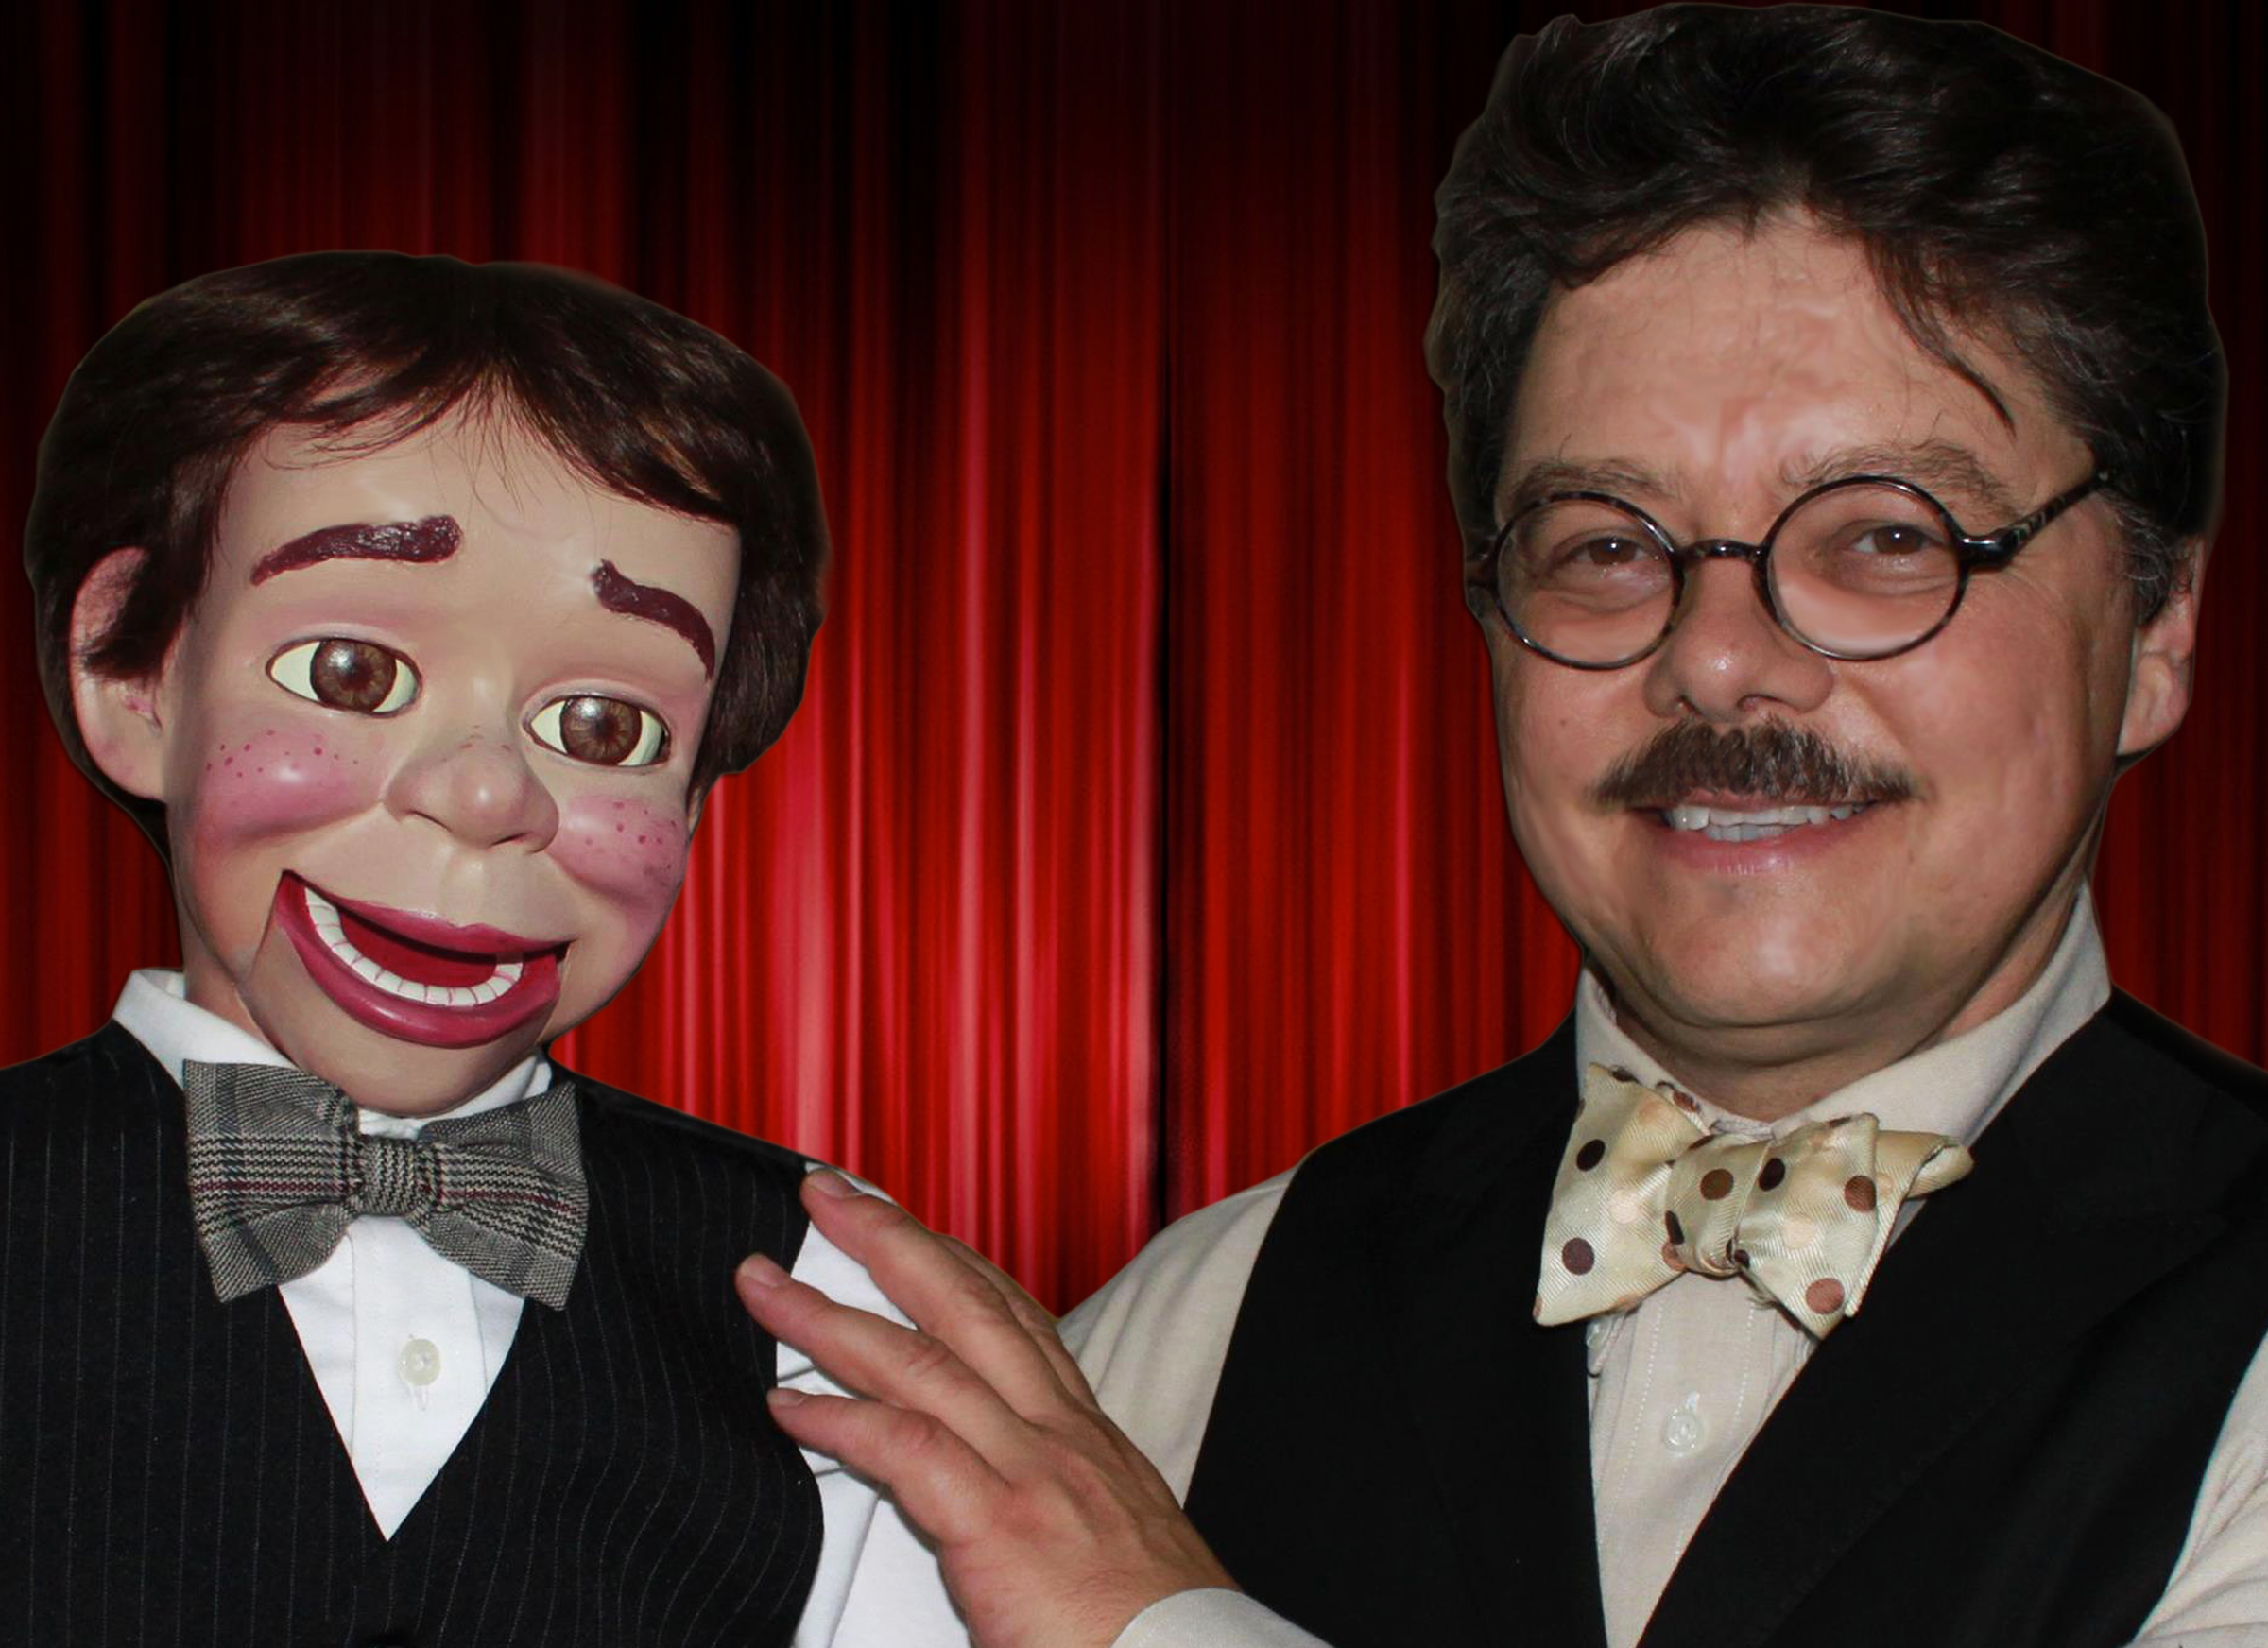 David Pitts, San Antonio TX Ventriloquist, comedian and magician and his wooden friend Henry Little.